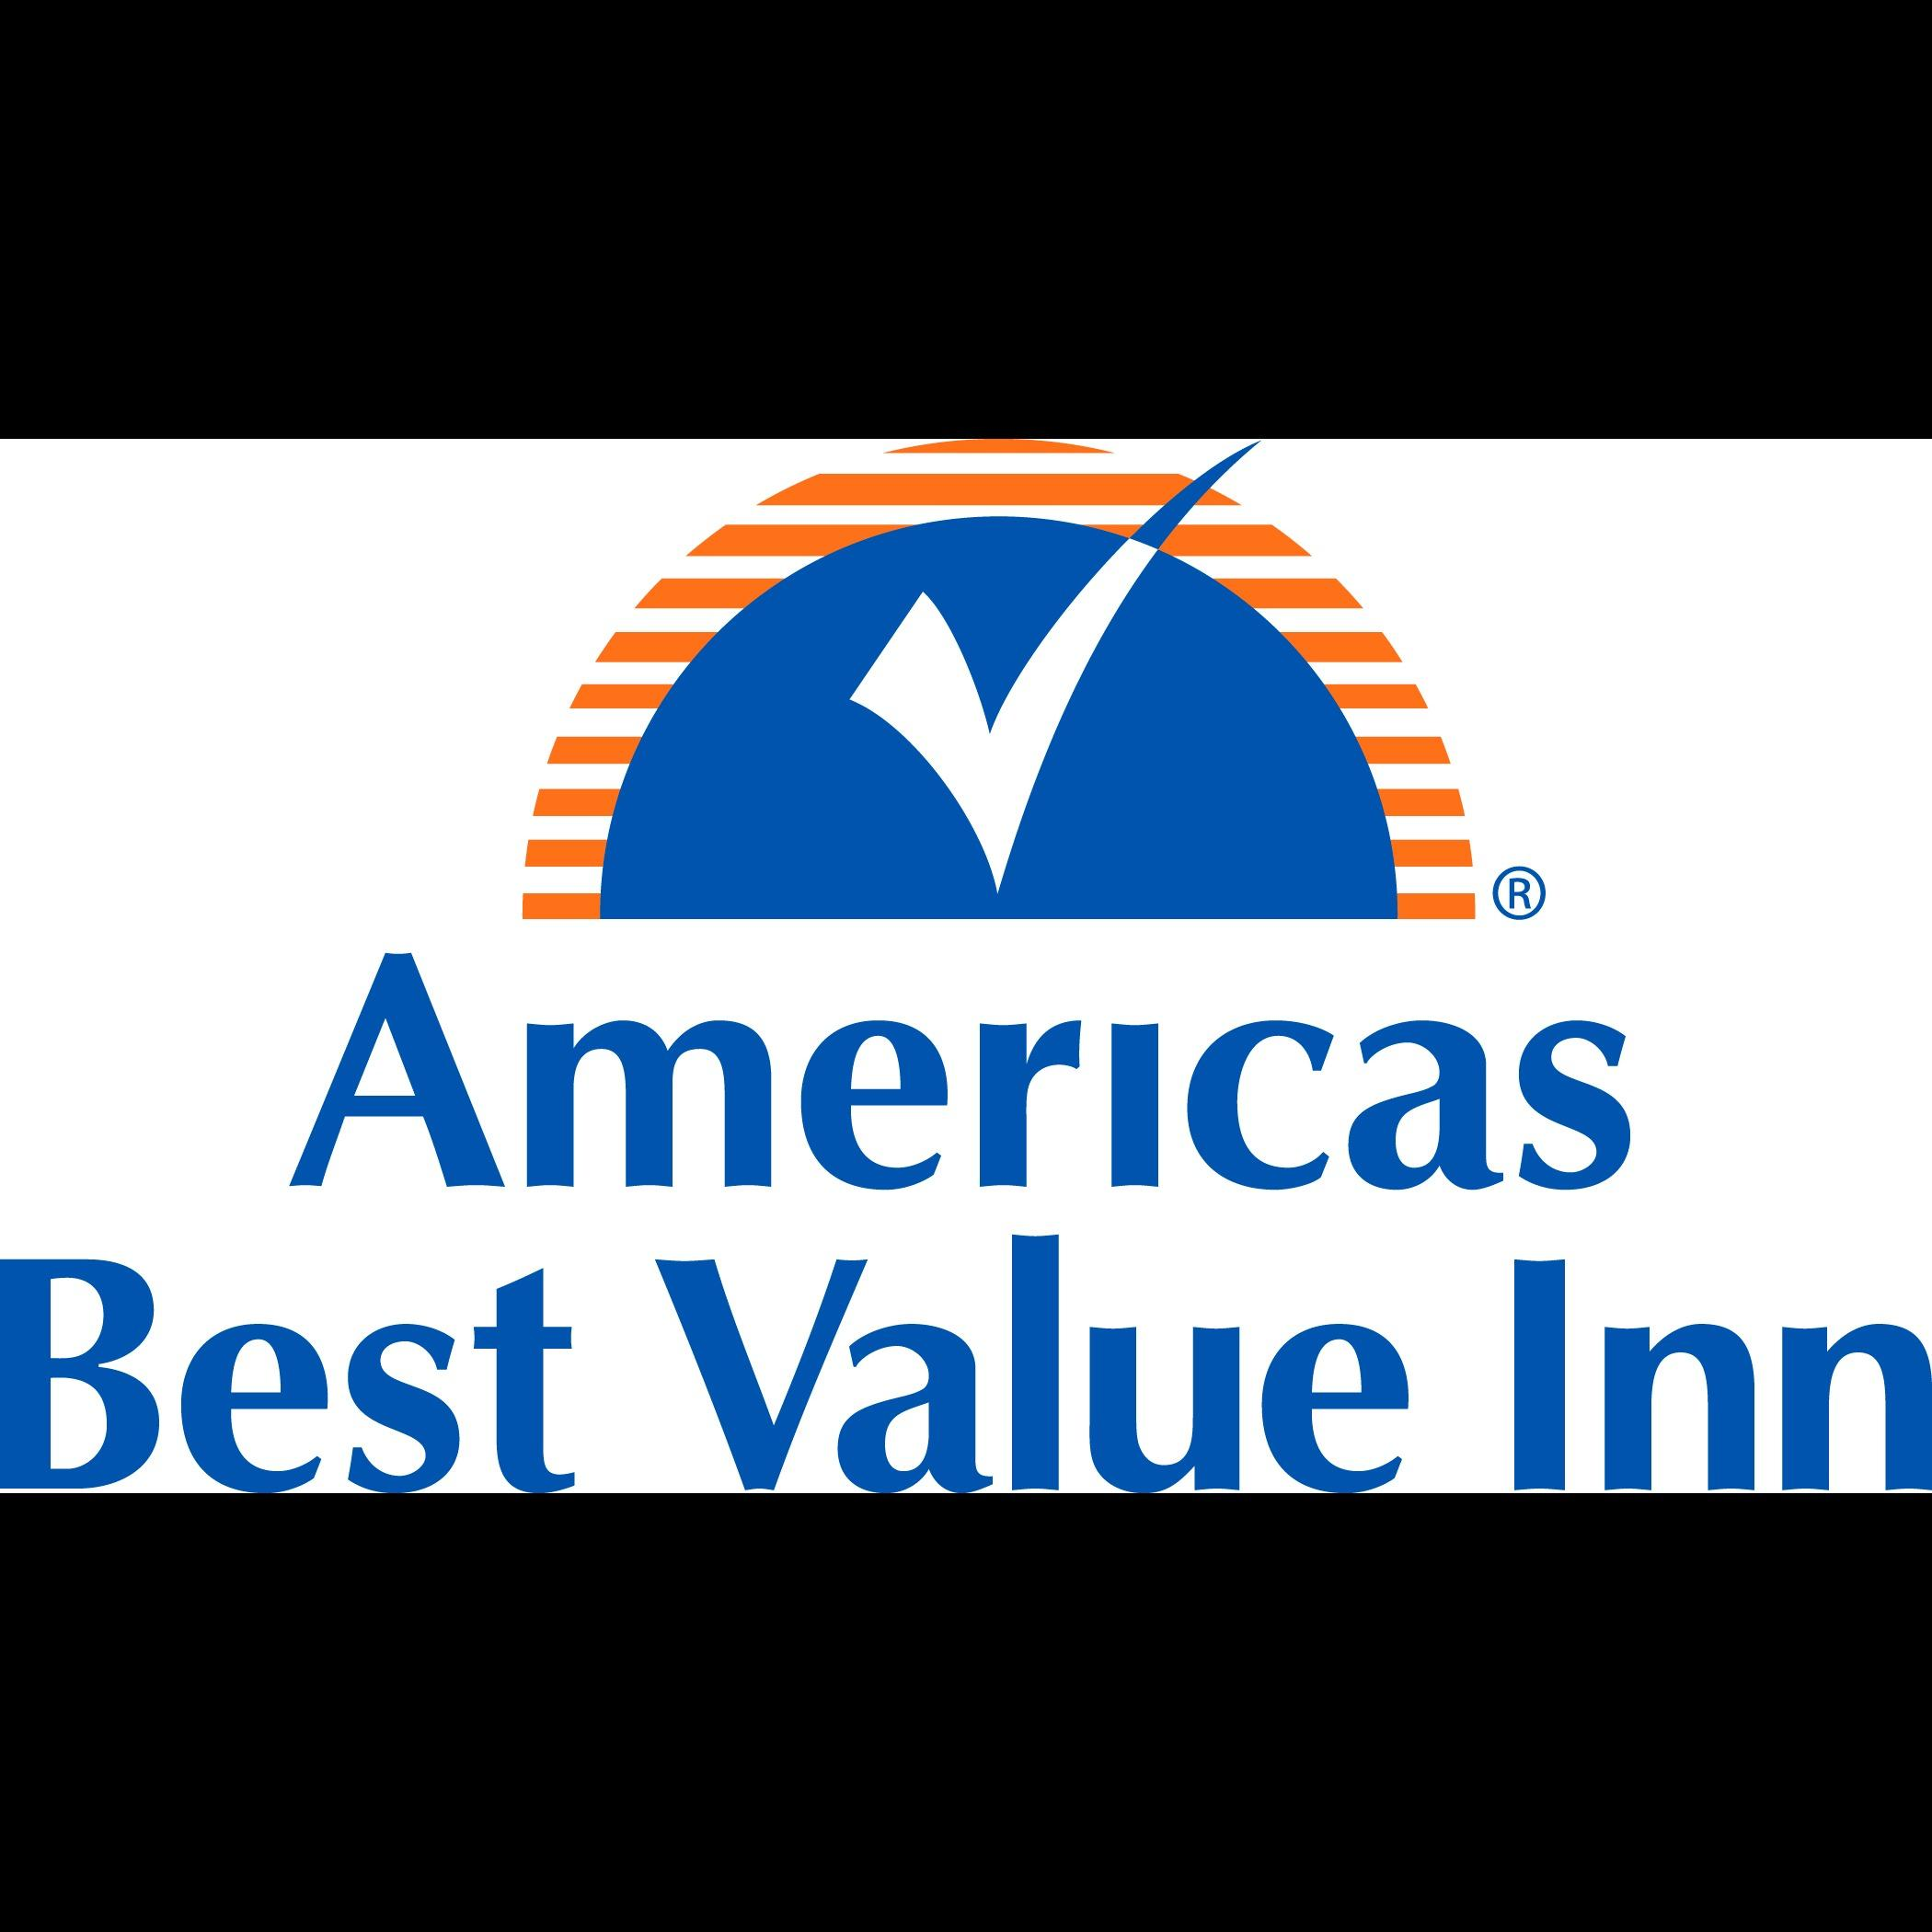 Americas Best Value Inn by the River - Hot Springs